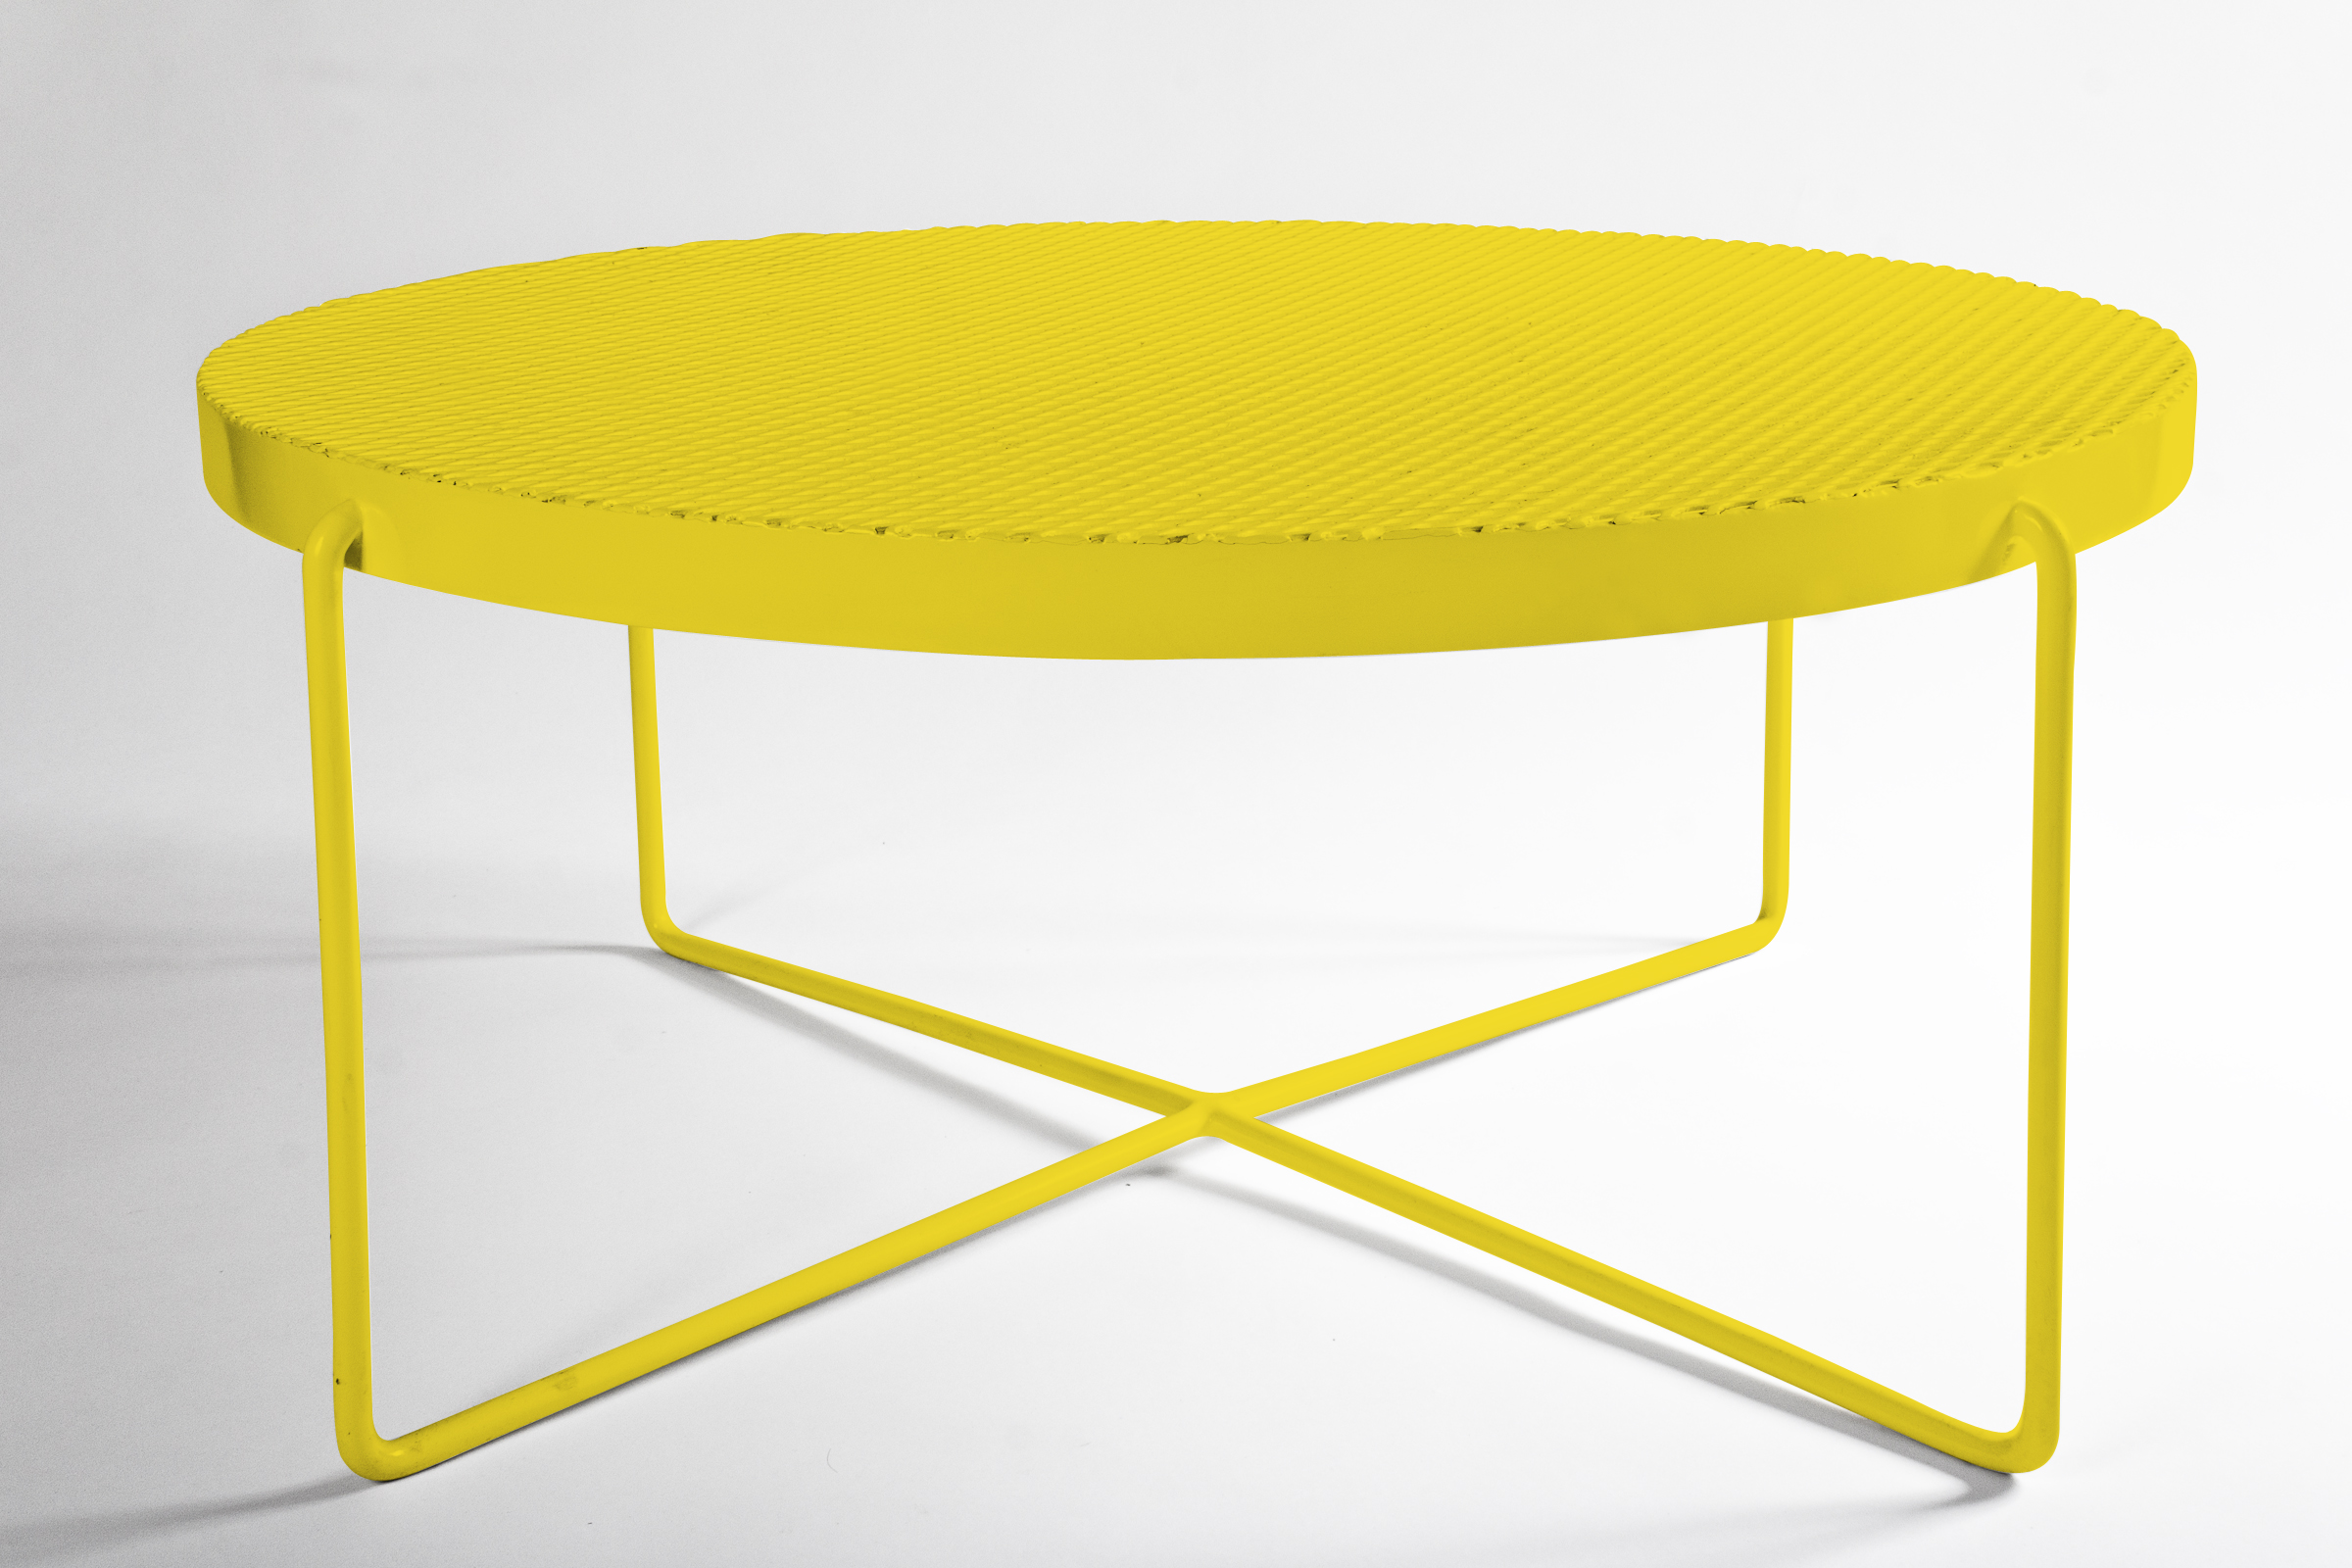 circa-table-large-perforated-yellow